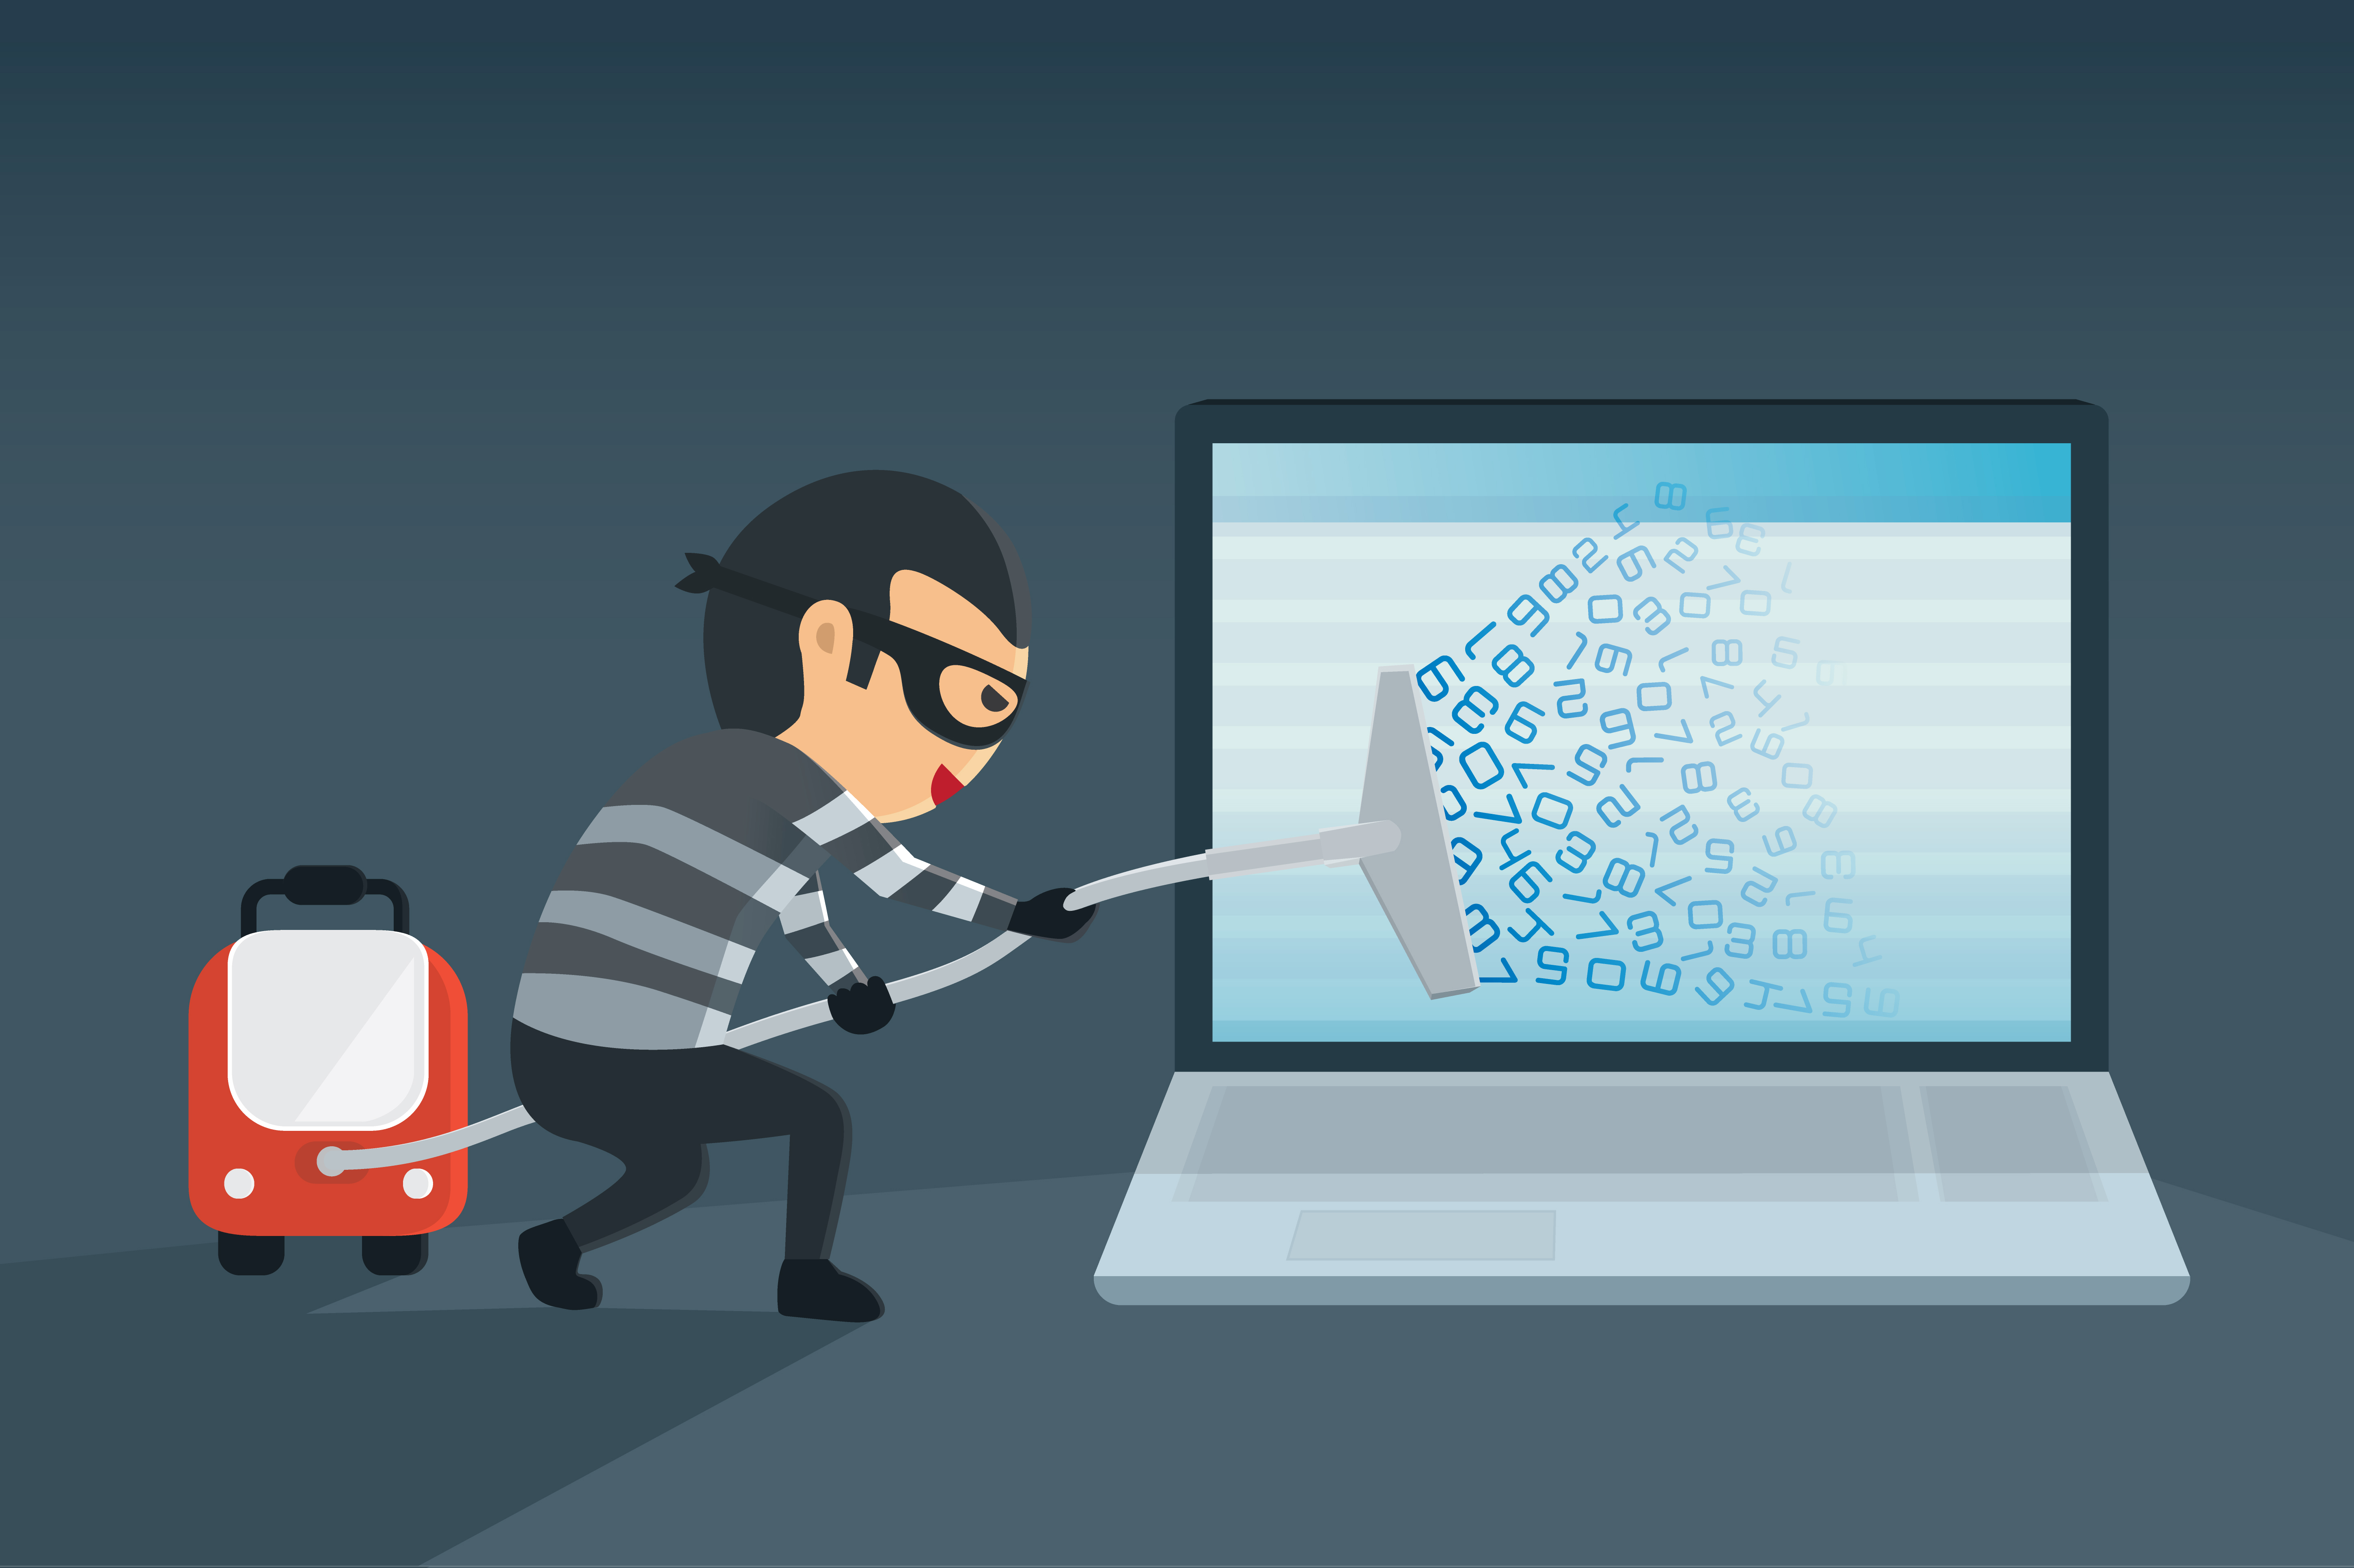 online fraud and identity theft Identity theft occurs when someone uses your personal information such as: name credit card number or other identifying information without your permission to commit fraud or other crimes.